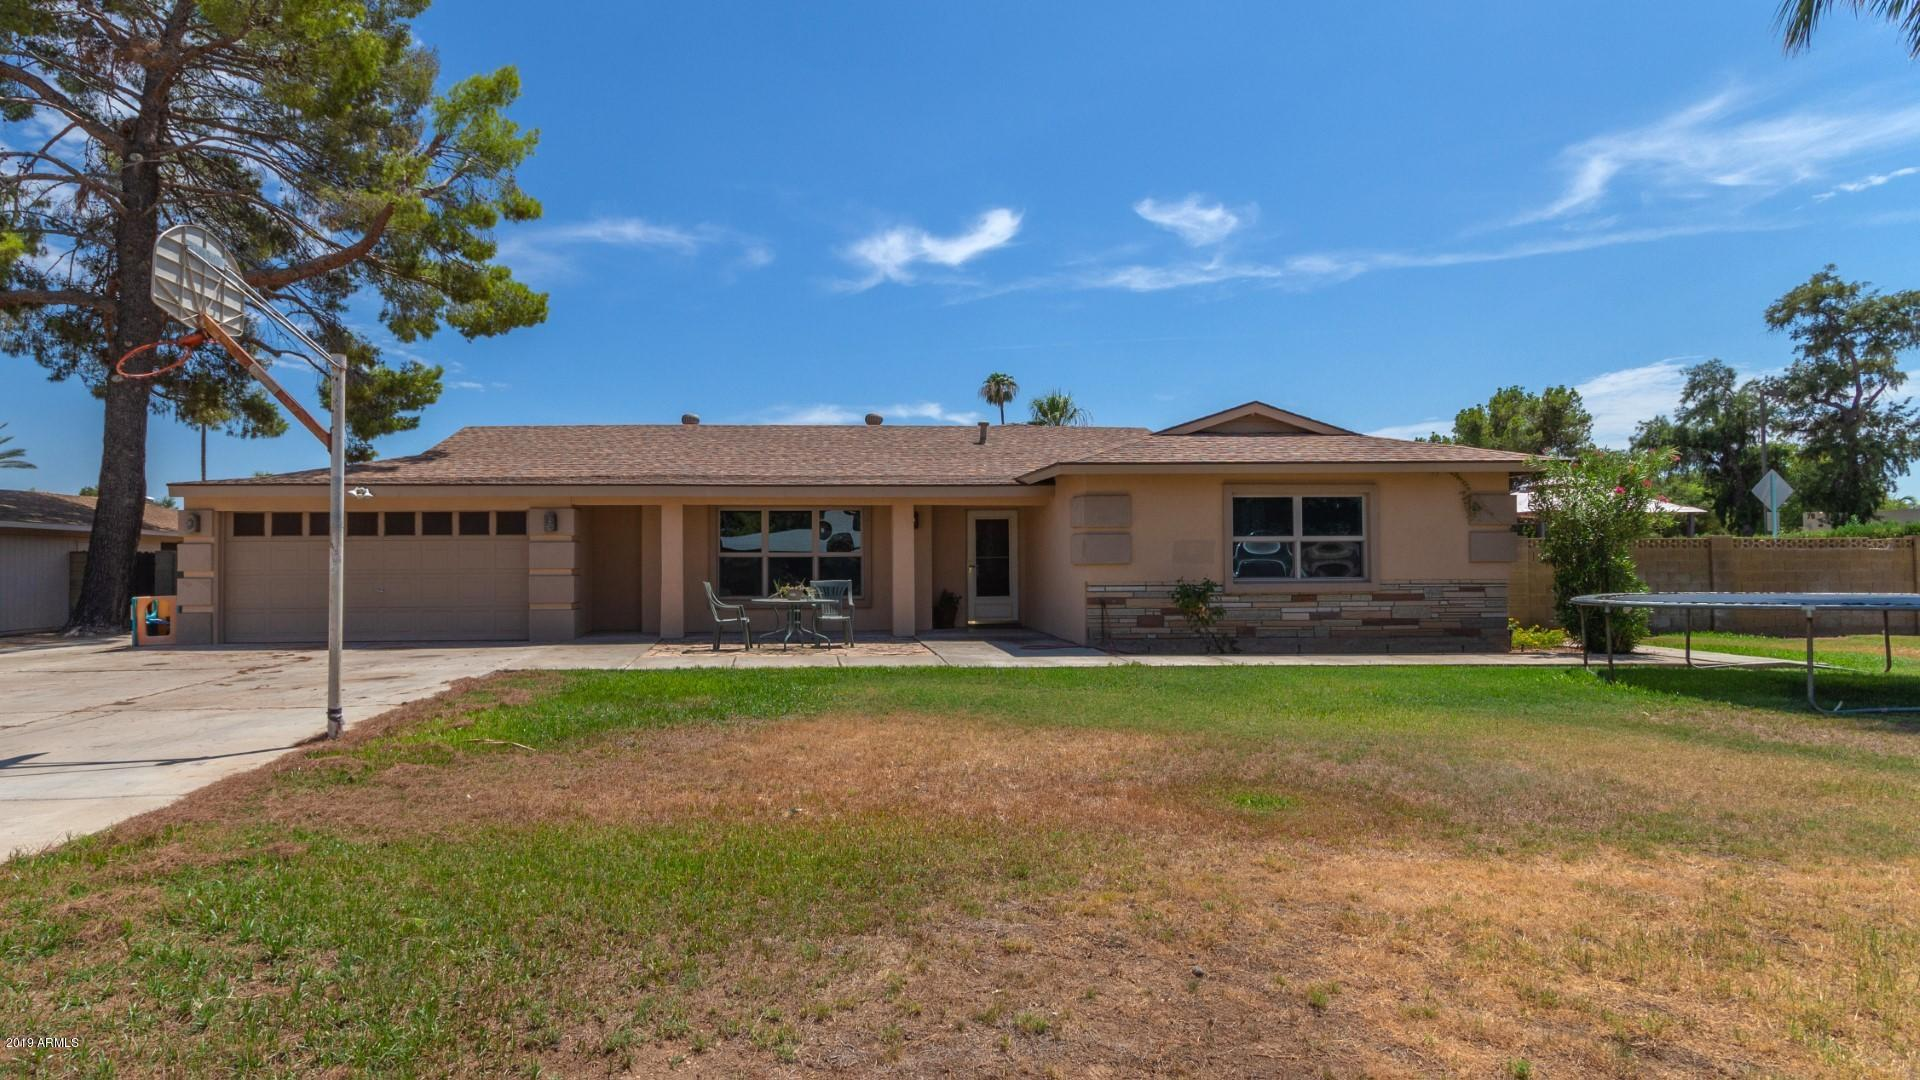 Photo of 401 E FAIRWAY Drive, Litchfield Park, AZ 85340